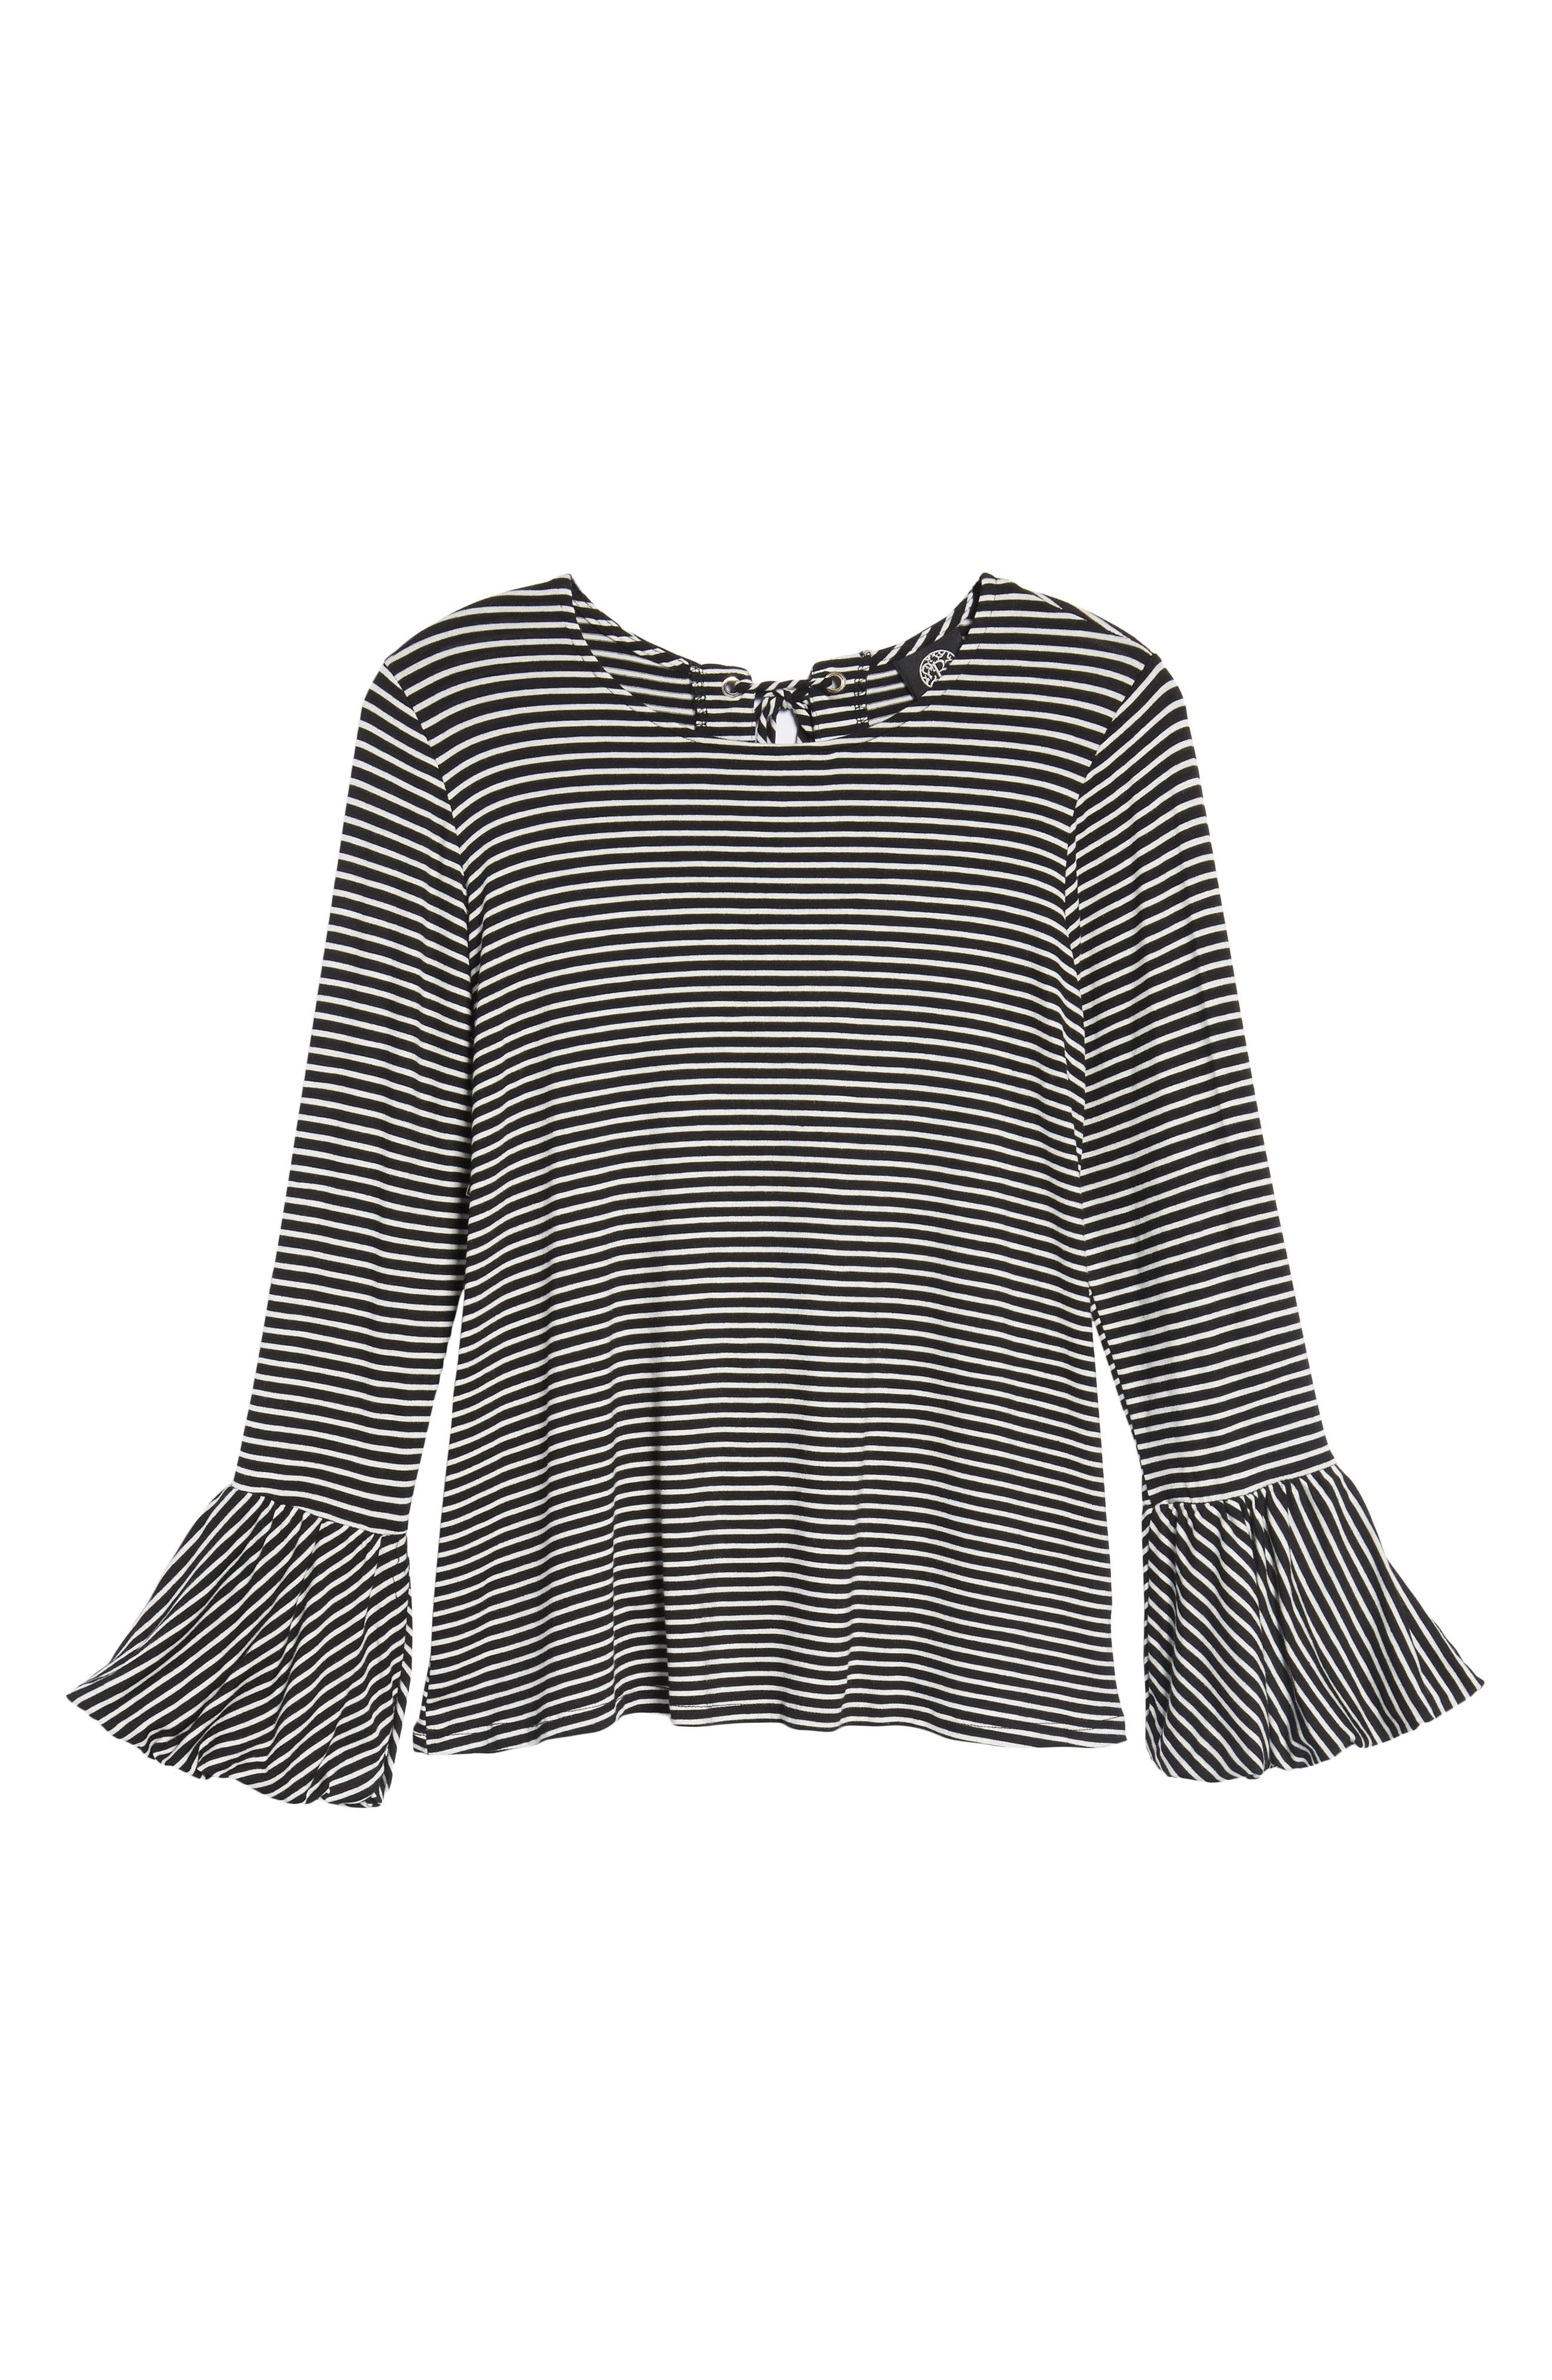 Bell Sleeve Top,                             Alternate thumbnail 6, color,                             003